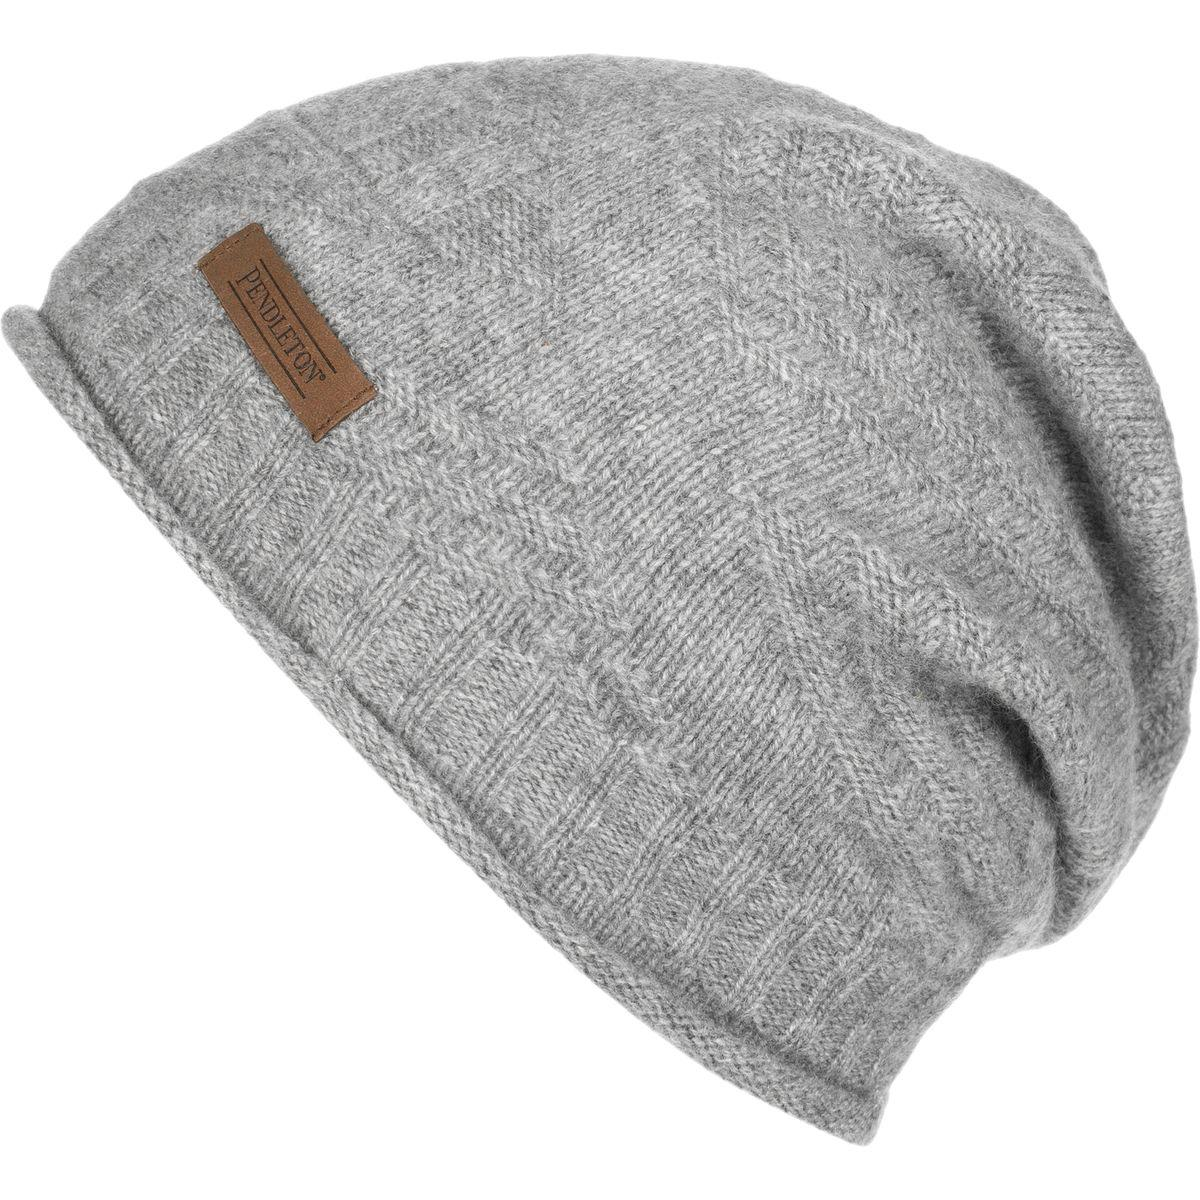 d1c32257bd06f Lyst - Pendleton Cashmere Roll Edge Hat in Gray for Men